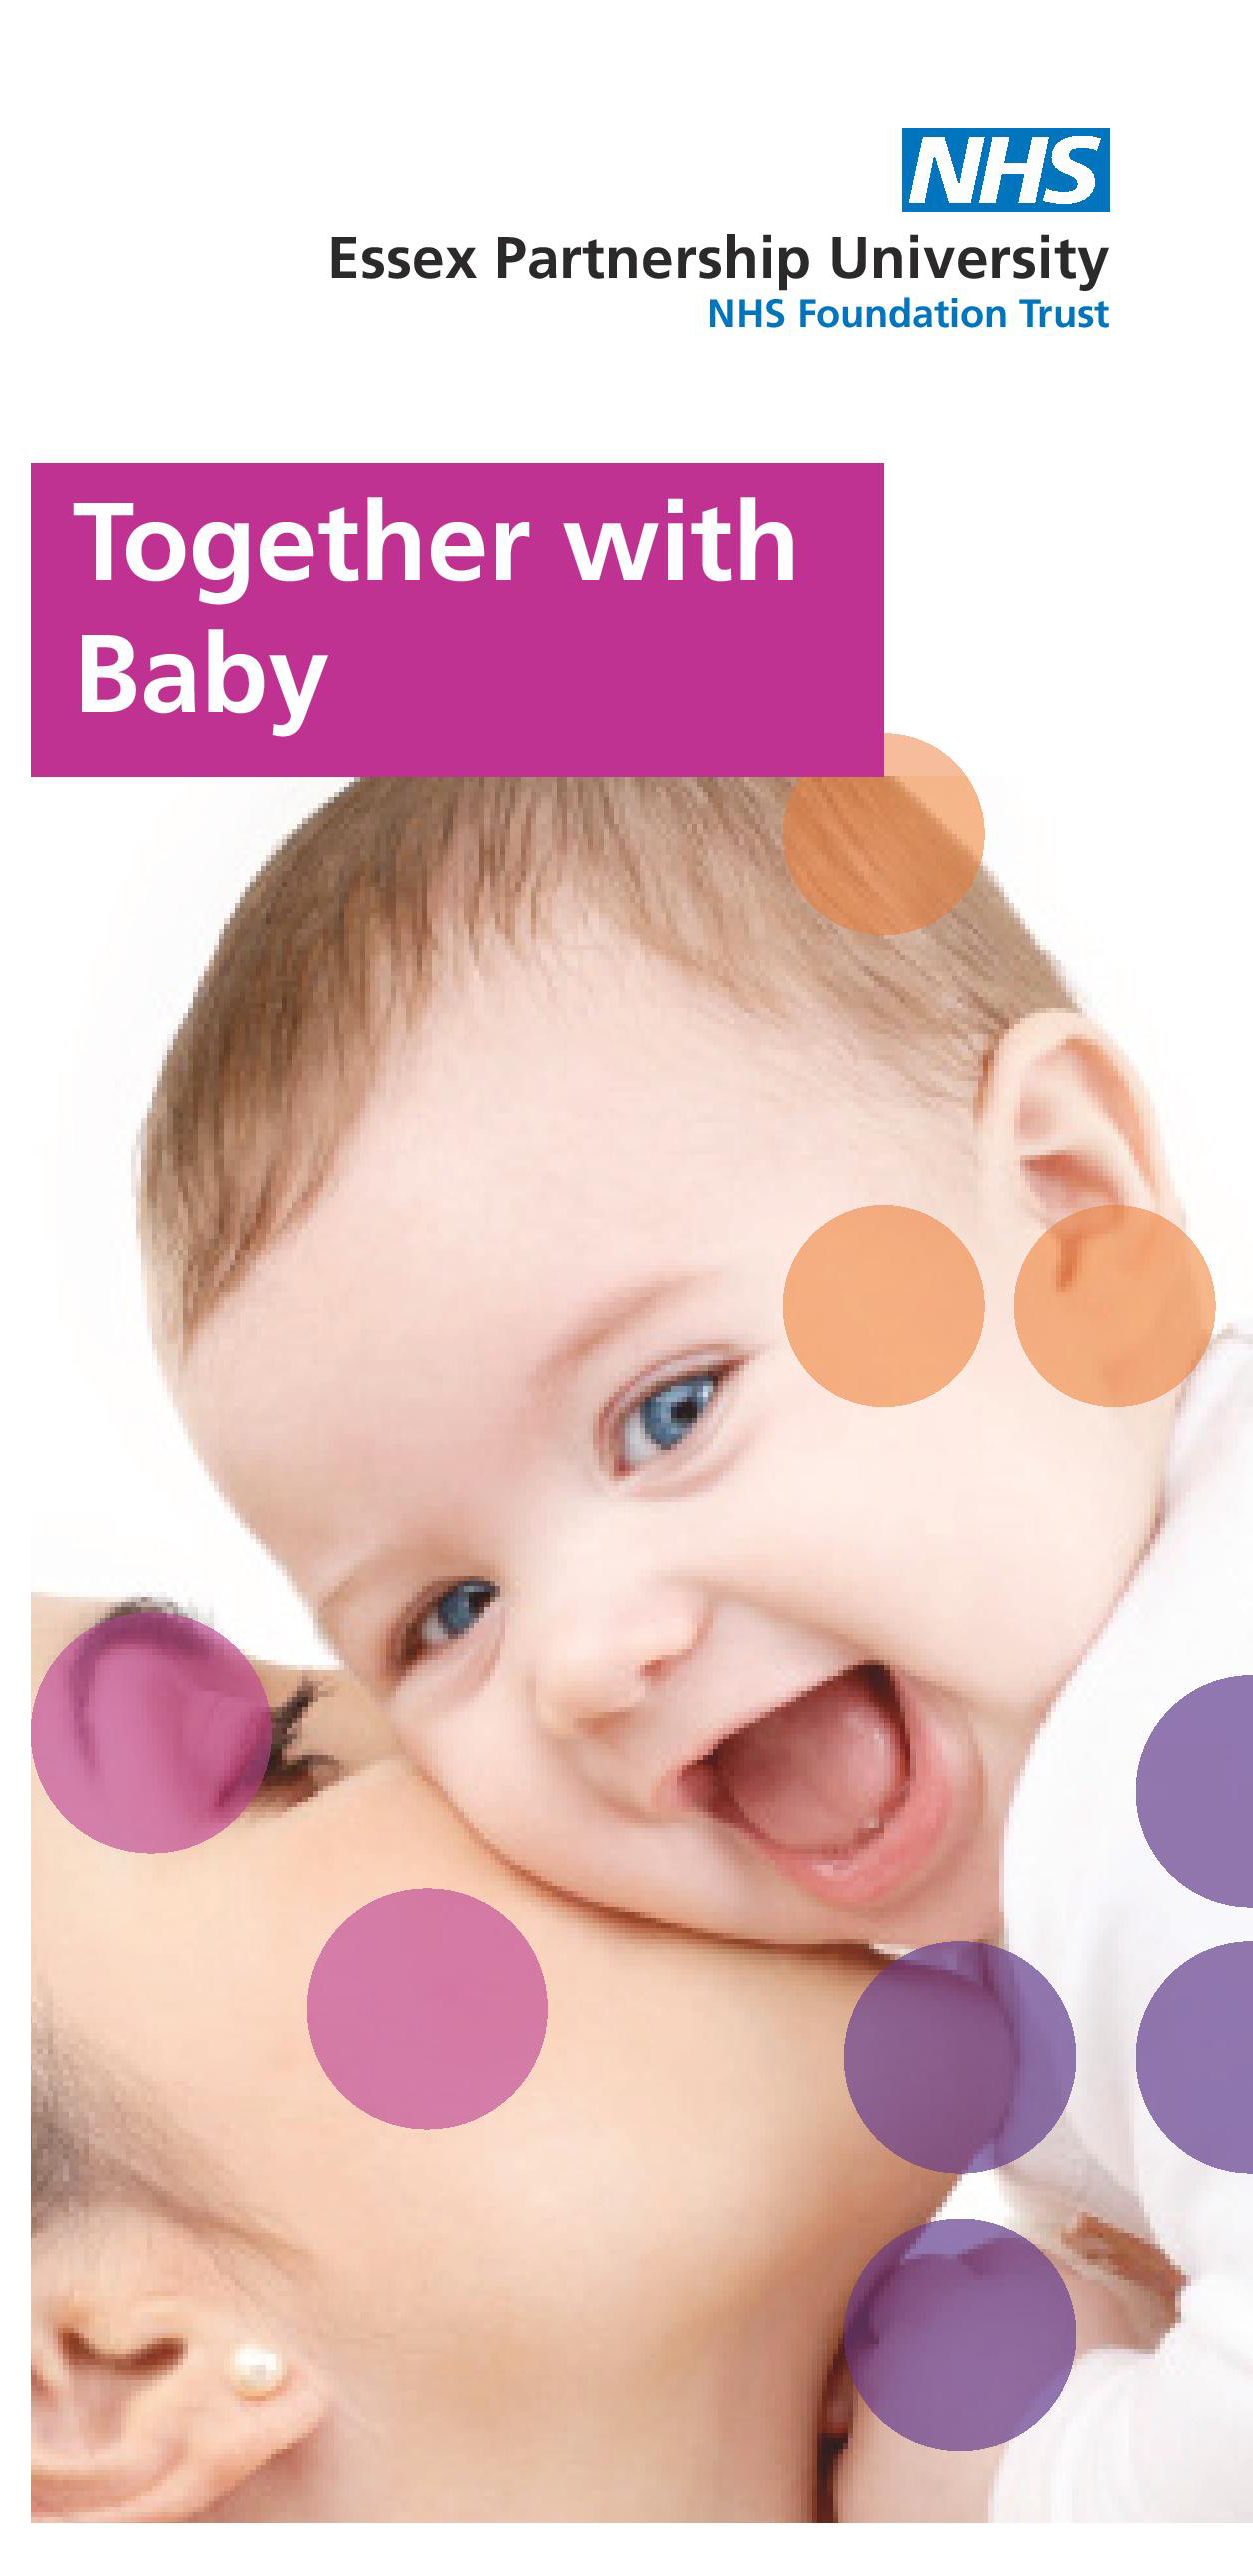 Front cover of the Together with Baby patient leaflet